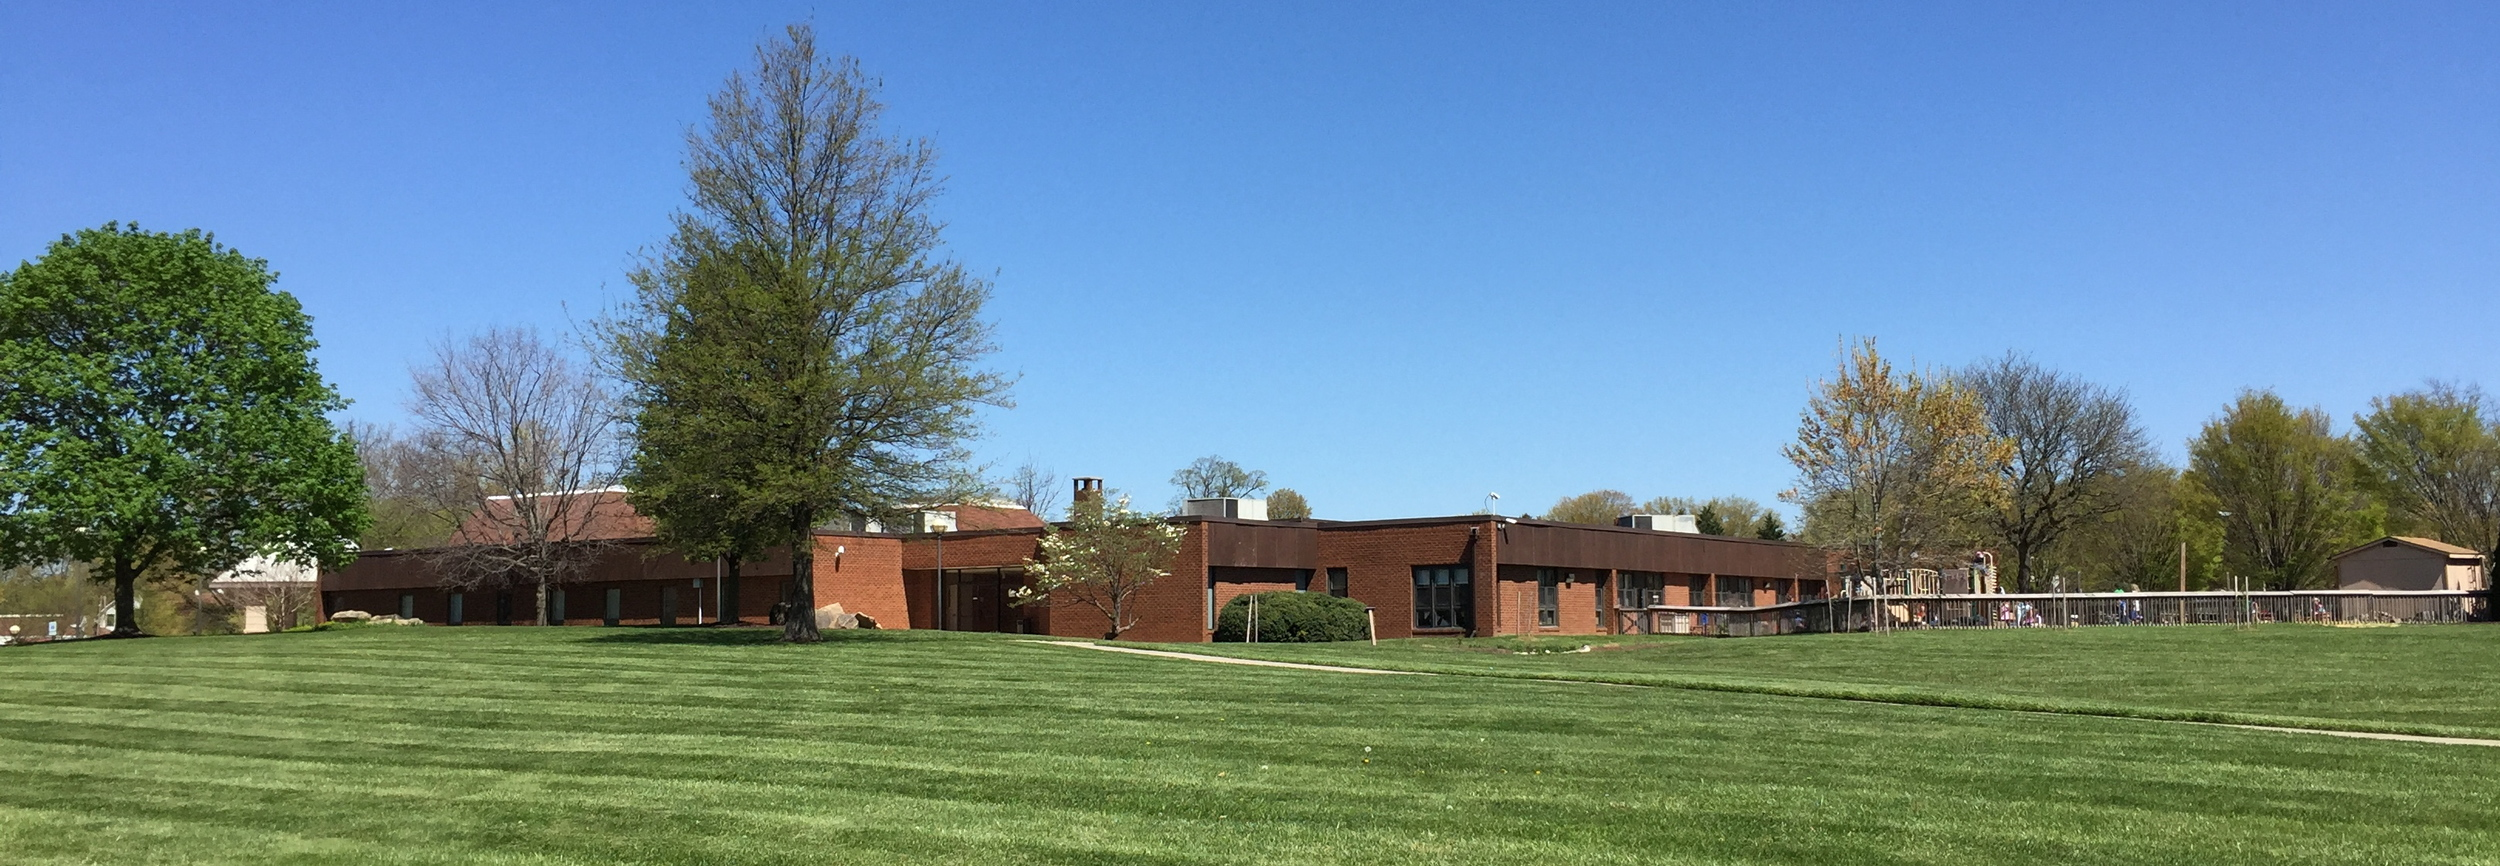 South lawn of the facility